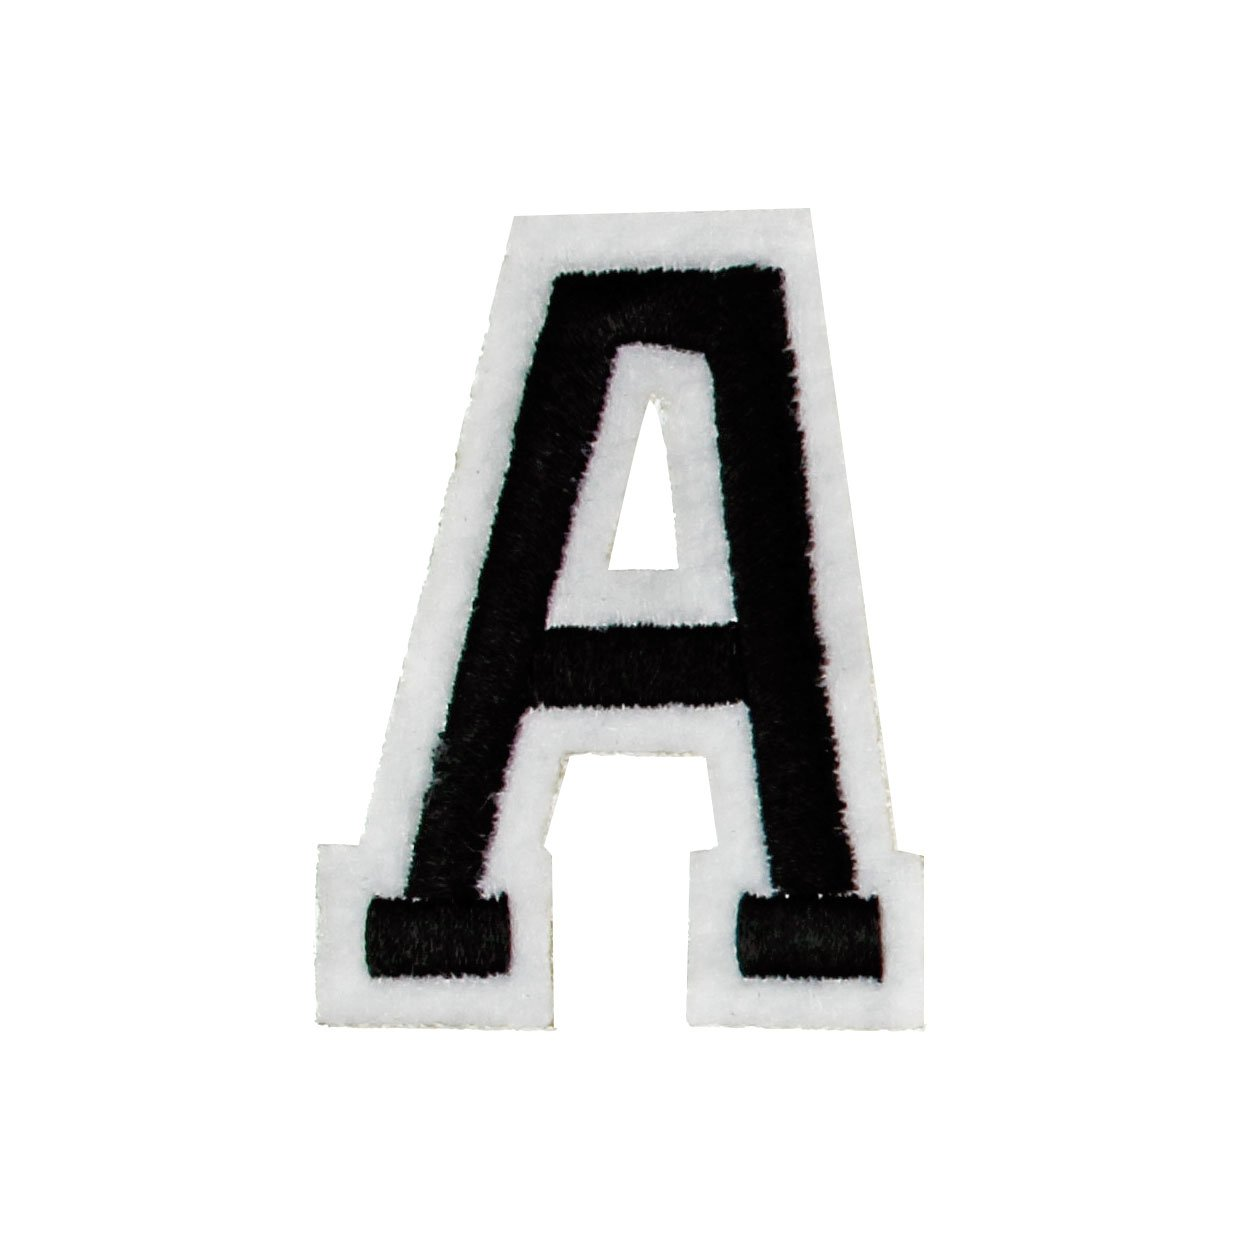 RECHERE letter Alphabet Uppercase Embroidered Iron On Patch Applique Black (S) p-zm-001bks